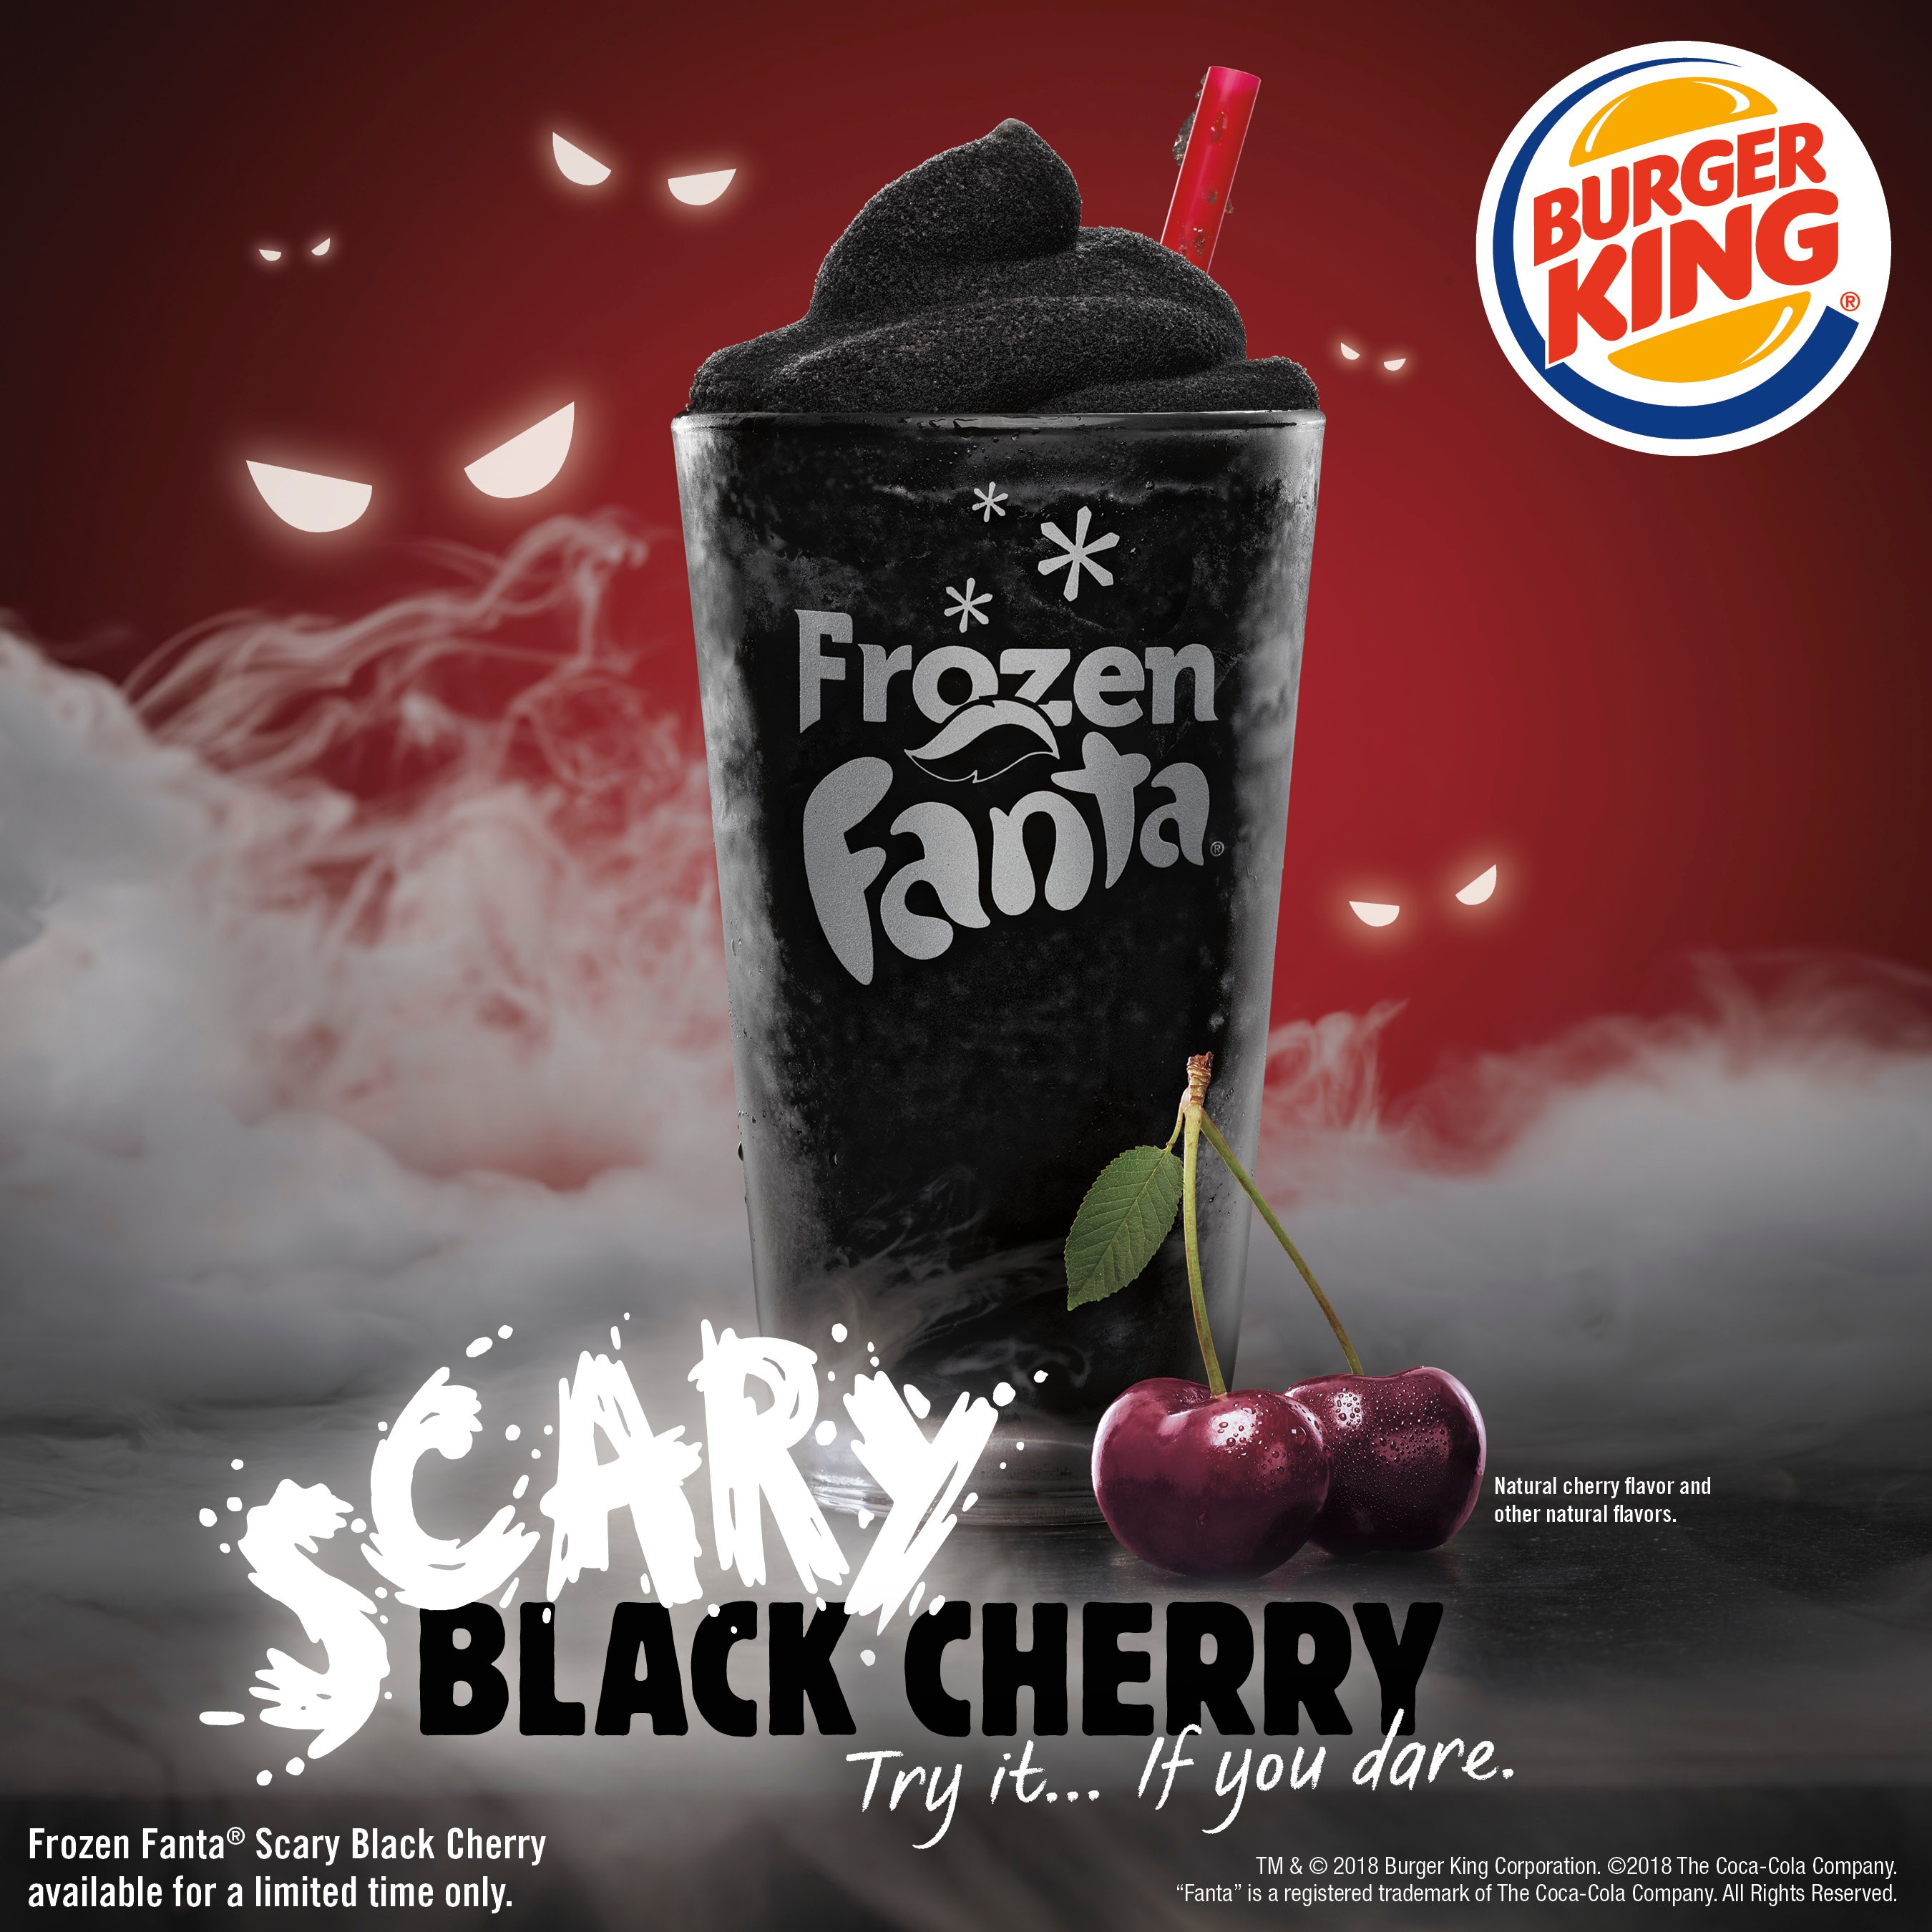 Burger King's Frozen Fanta Scary Black Cherry Drink Is A